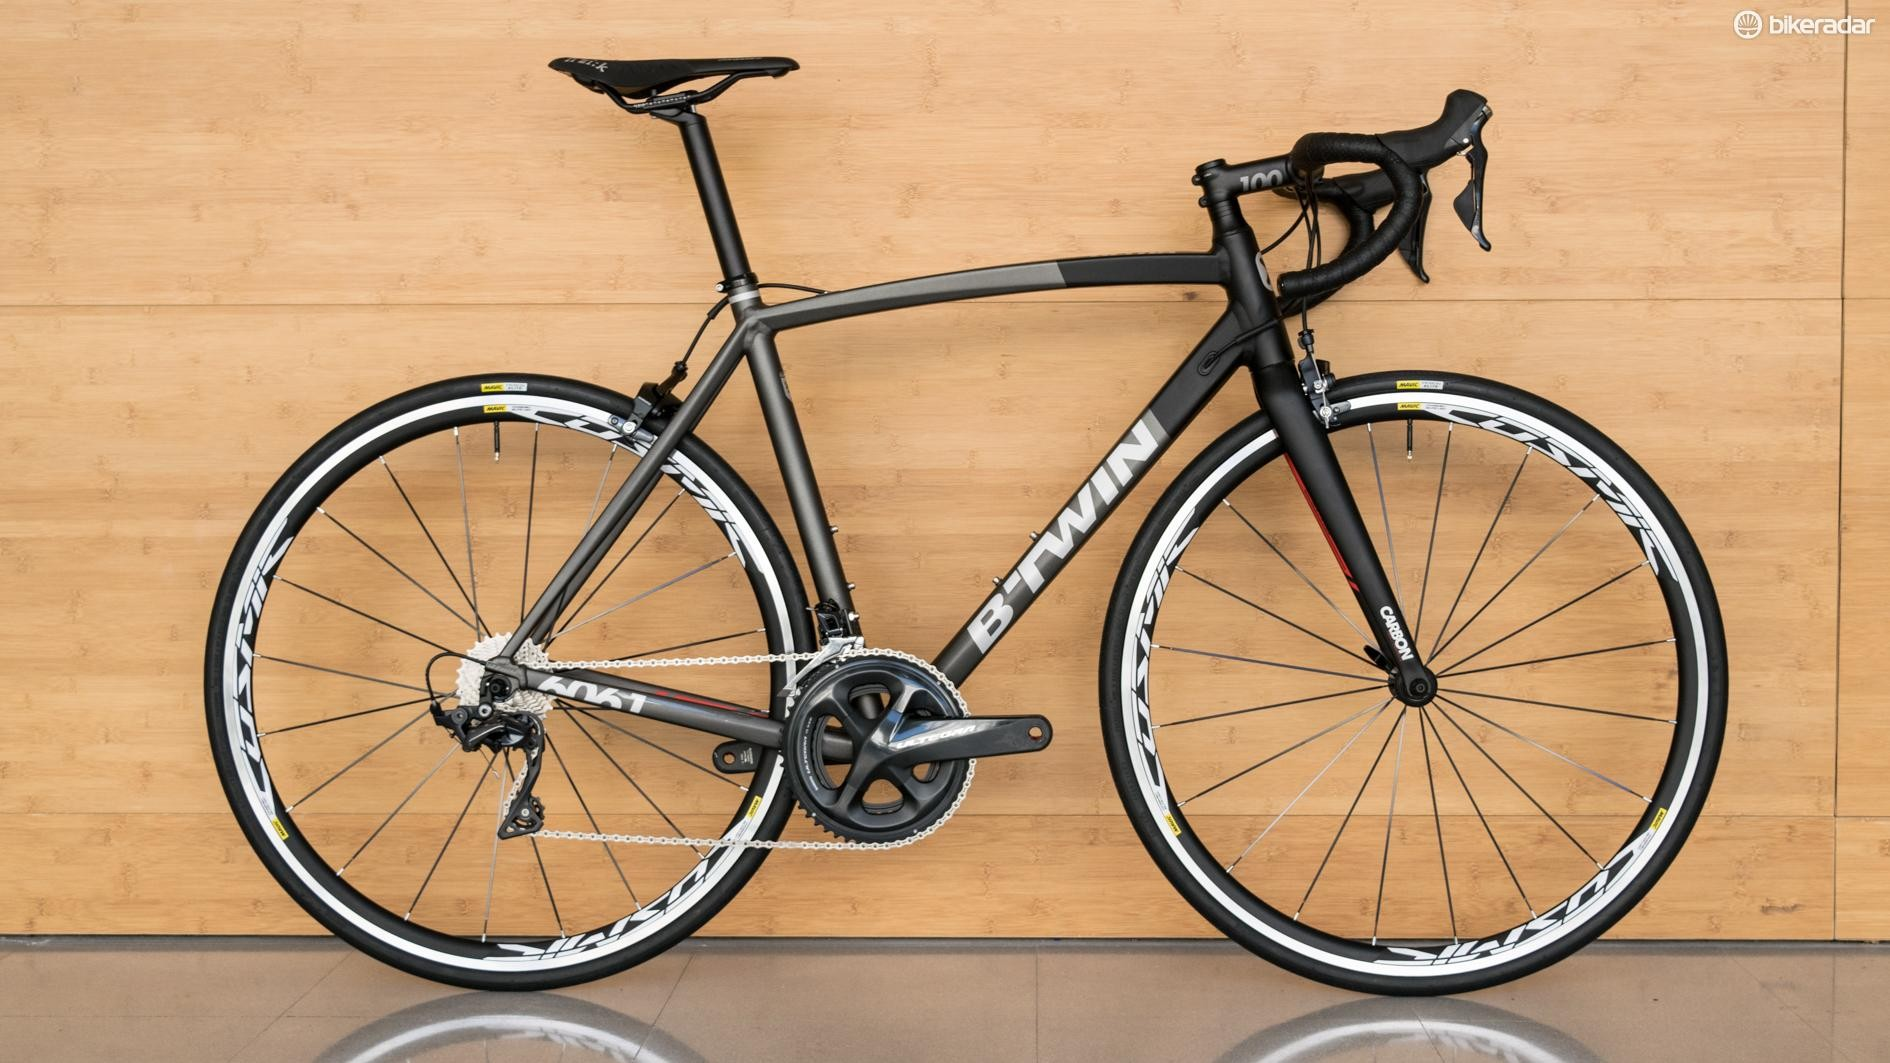 More-or-less full Ultegra R8000 and Mavic Cosmic Elite UST wheels make for a pleasing build